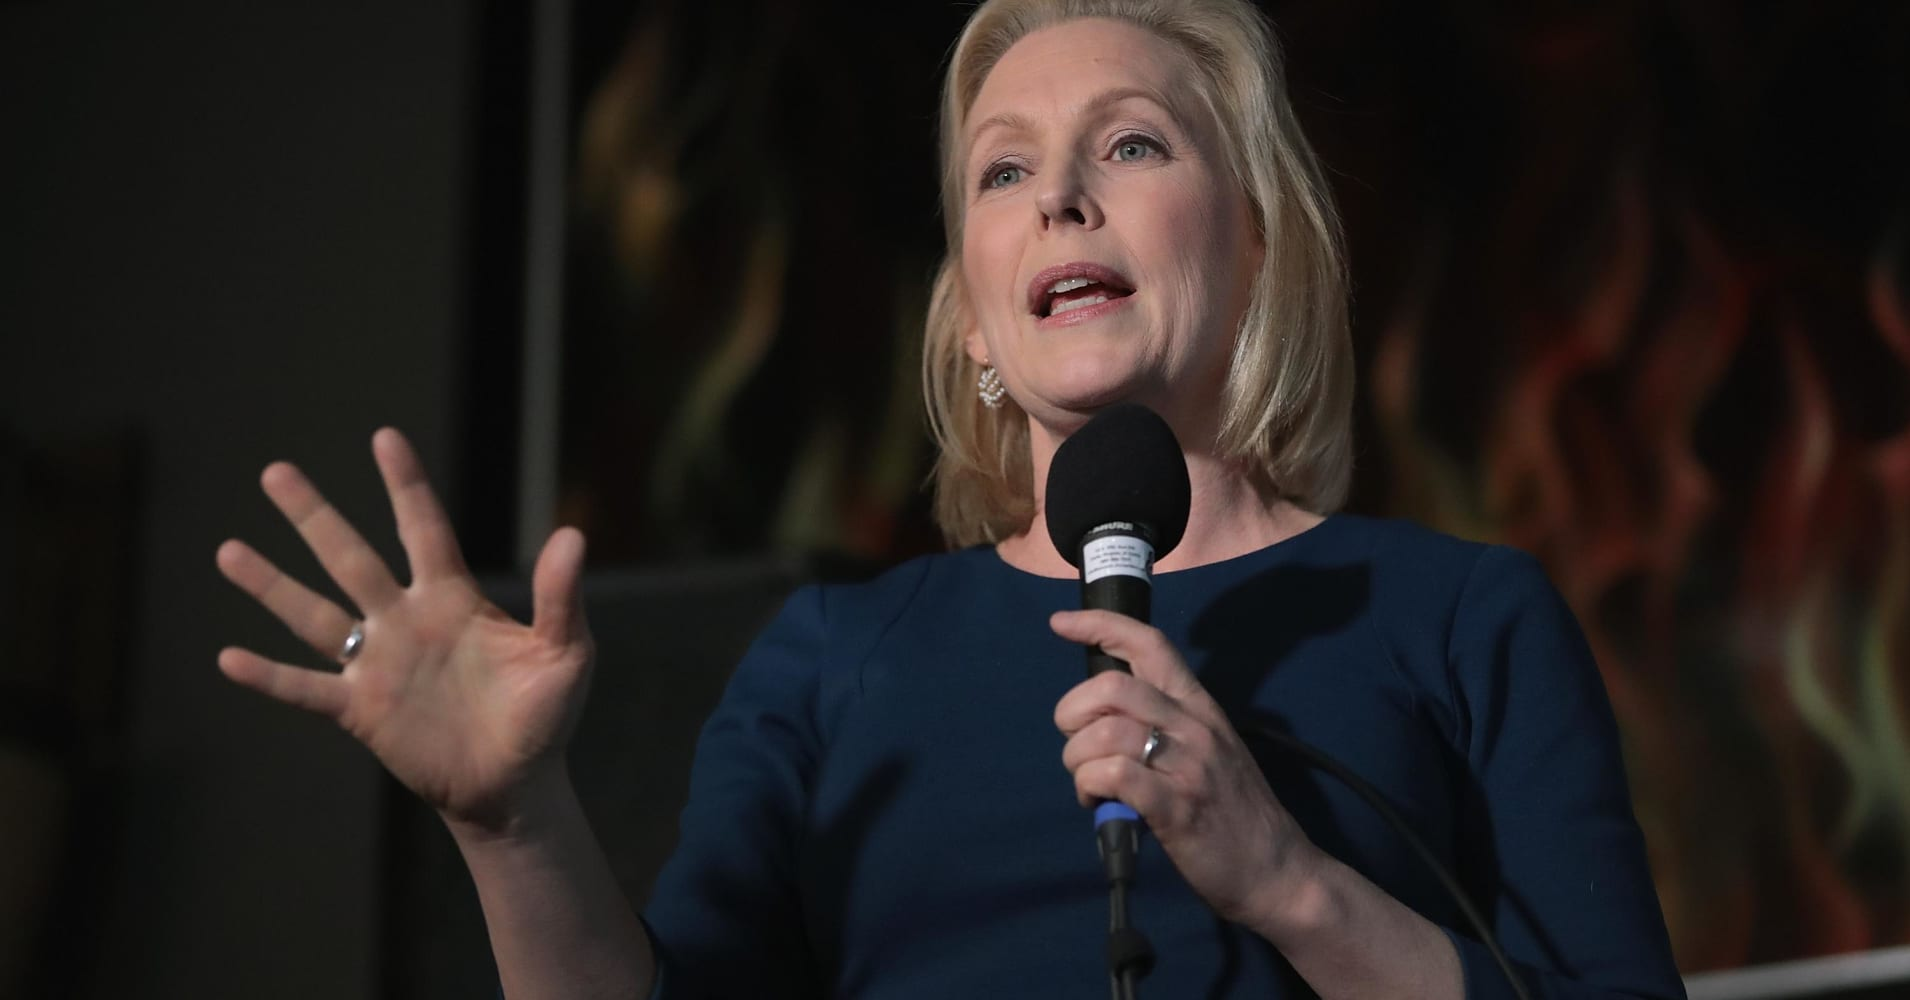 Pfizer exec Sally Susman to host presidential fundraiser for Democrat Kirsten Gillibrand